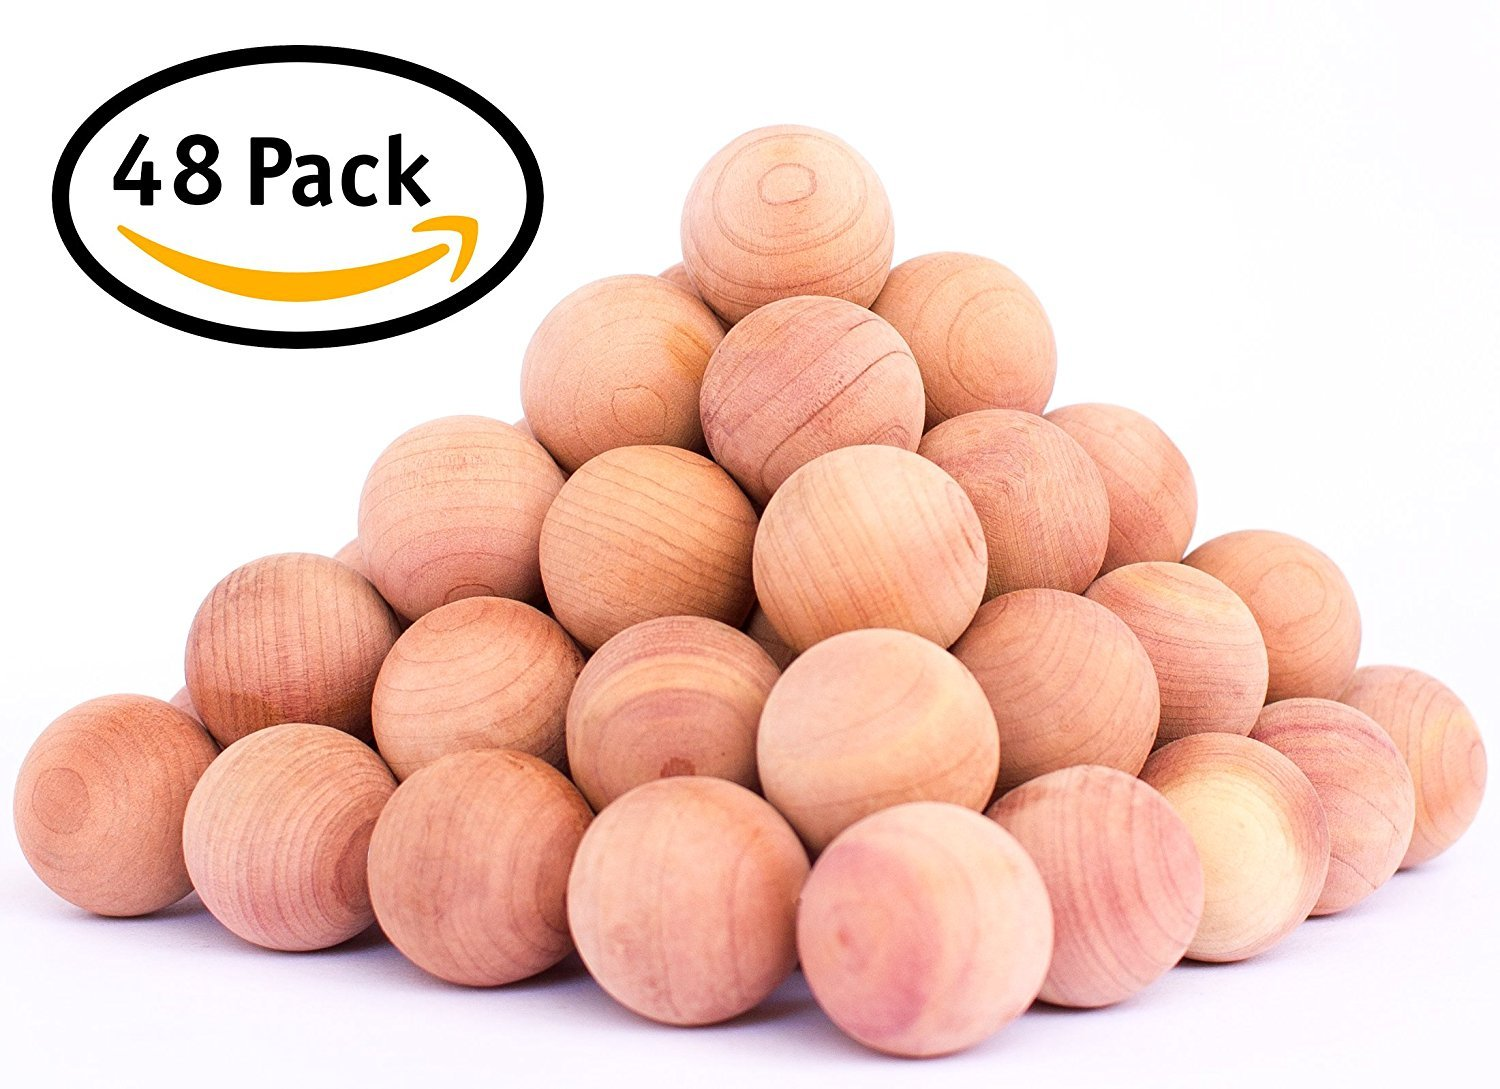 JJecommUS Aromatic Cedar Anti Moth Balls   100% Natural Repellent for Closets & Drawers   Pantry Pest Killer   Clothes Storage Protection Odor Eliminator - Refresh Protect with Aromatic Oil Fragrance